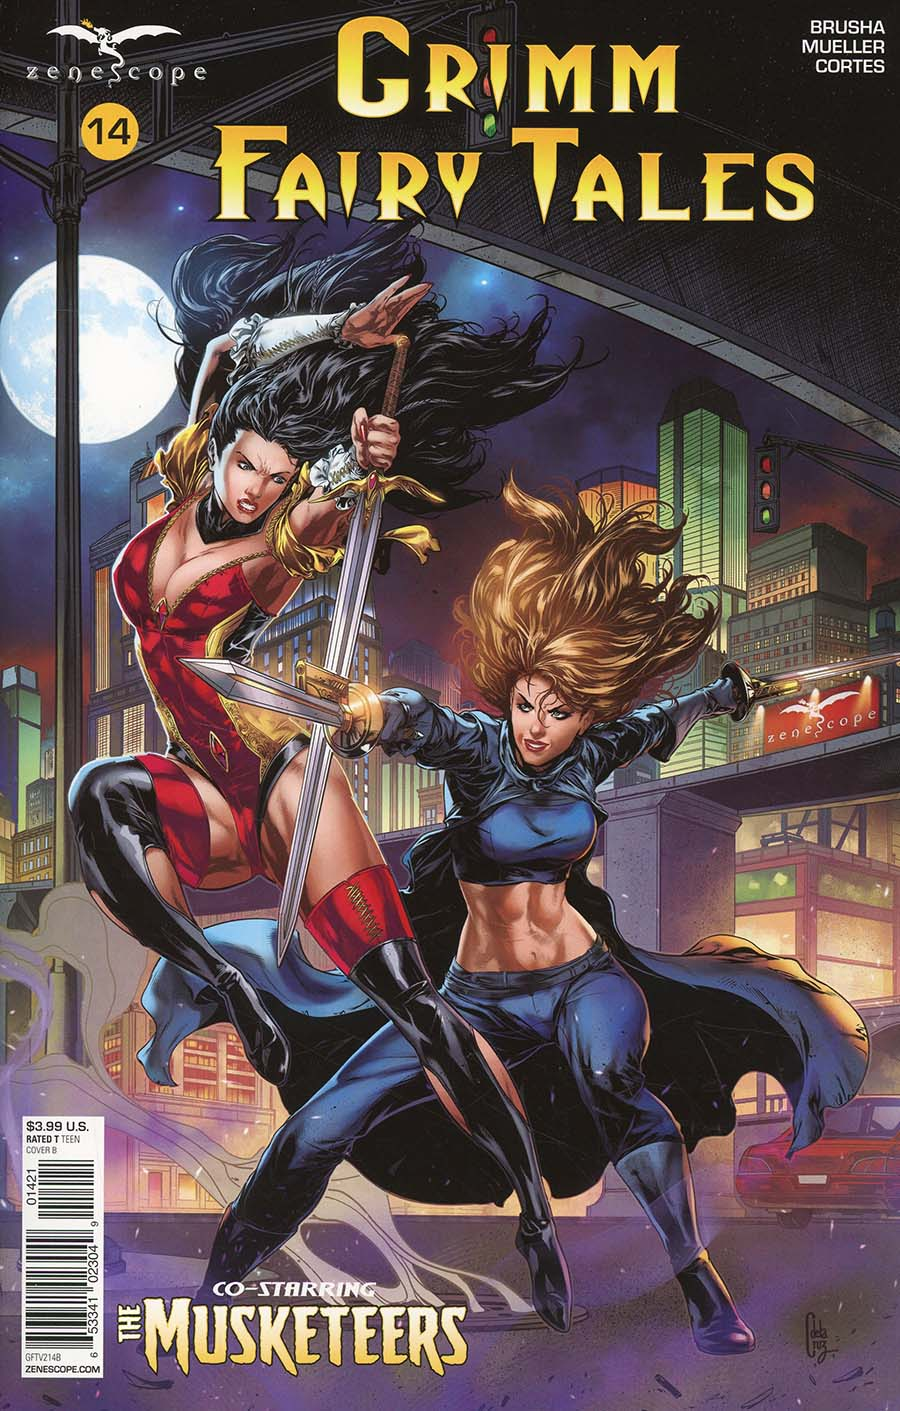 Grimm Fairy Tales Vol 2 #14 Cover B Canaan White